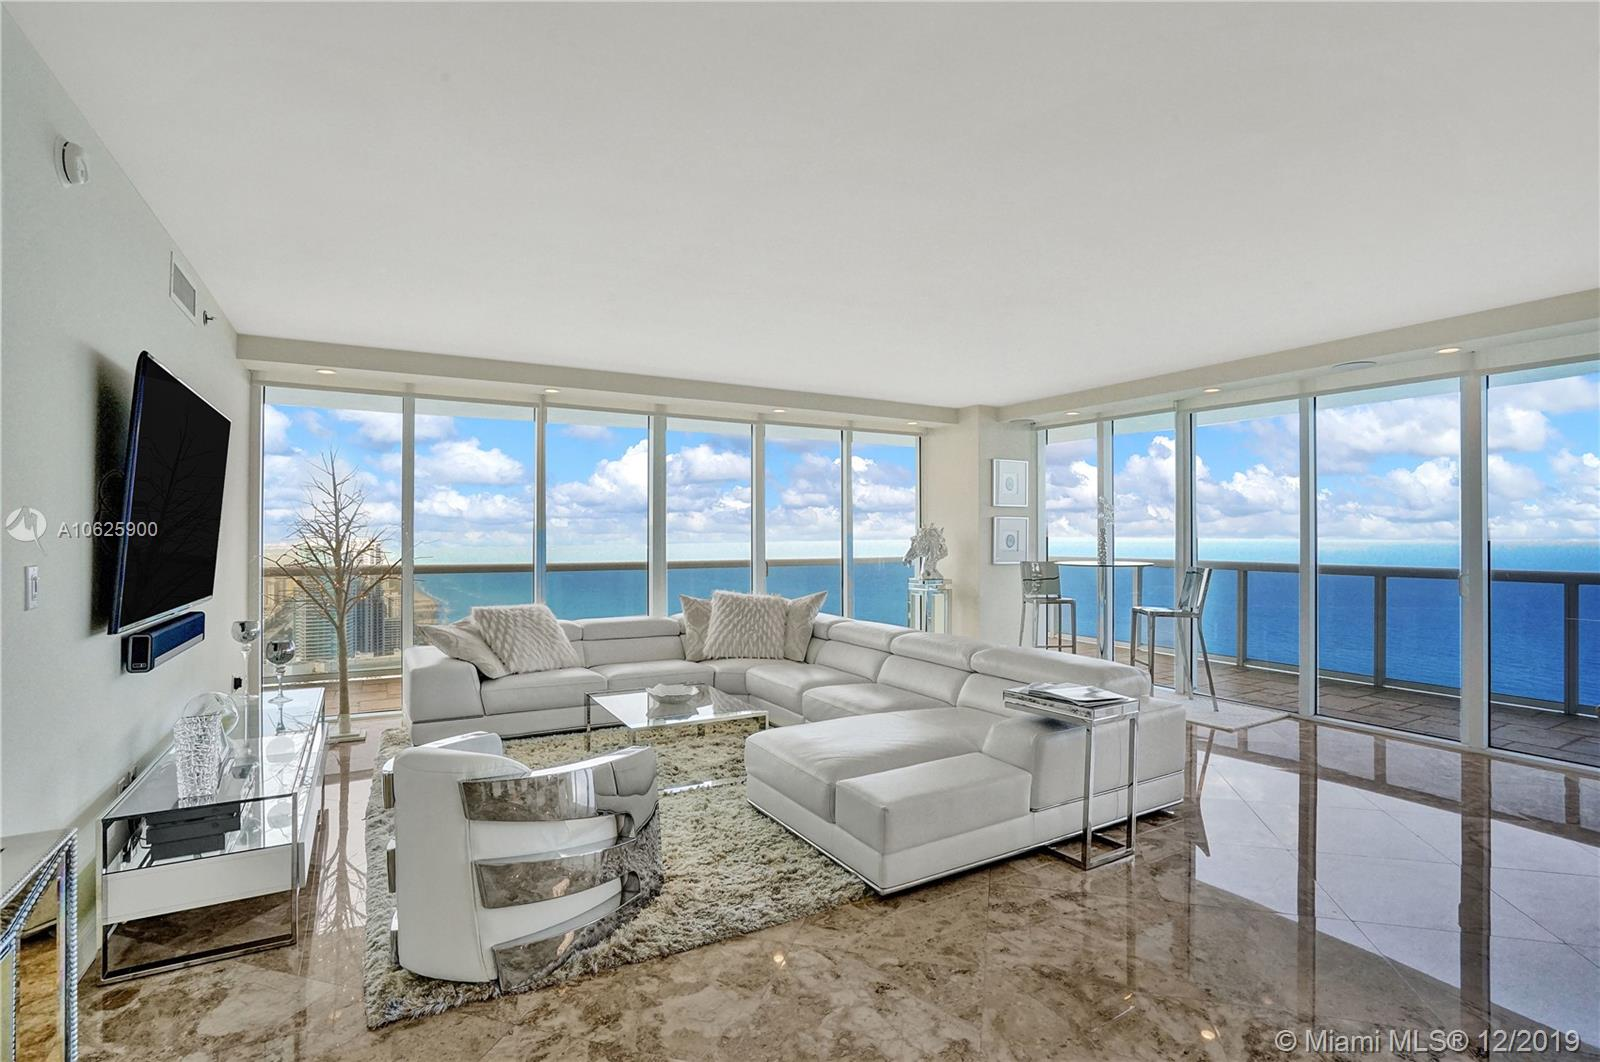 Spectacular corner unit on high floor offering views to South Beach looking south and to Fort Lauderdale looking north. Watch cruise ships sailing by as you relax on your 586 sq. ft. balcony! The apartment has been substantially renovated & meticulously maintained. Gorgeous kitchen with stone quartz Calacatta waterfall countertop. Bamboo Eurostyle cabinetry & Kitchenaid appliances. Marble floors throughout. Surround Sound System. Master bath also has stone quartz Calacatta counters and new dual sinks. Soffits have been installed throughout the apartment with LED lighting. Custom made folddown Murphy bed system in the den will stay. Custom sliding glass doors on den for added privacy. Comes with one of the best assigned parking space. Call today. Easy to show. Please see brokers remarks.